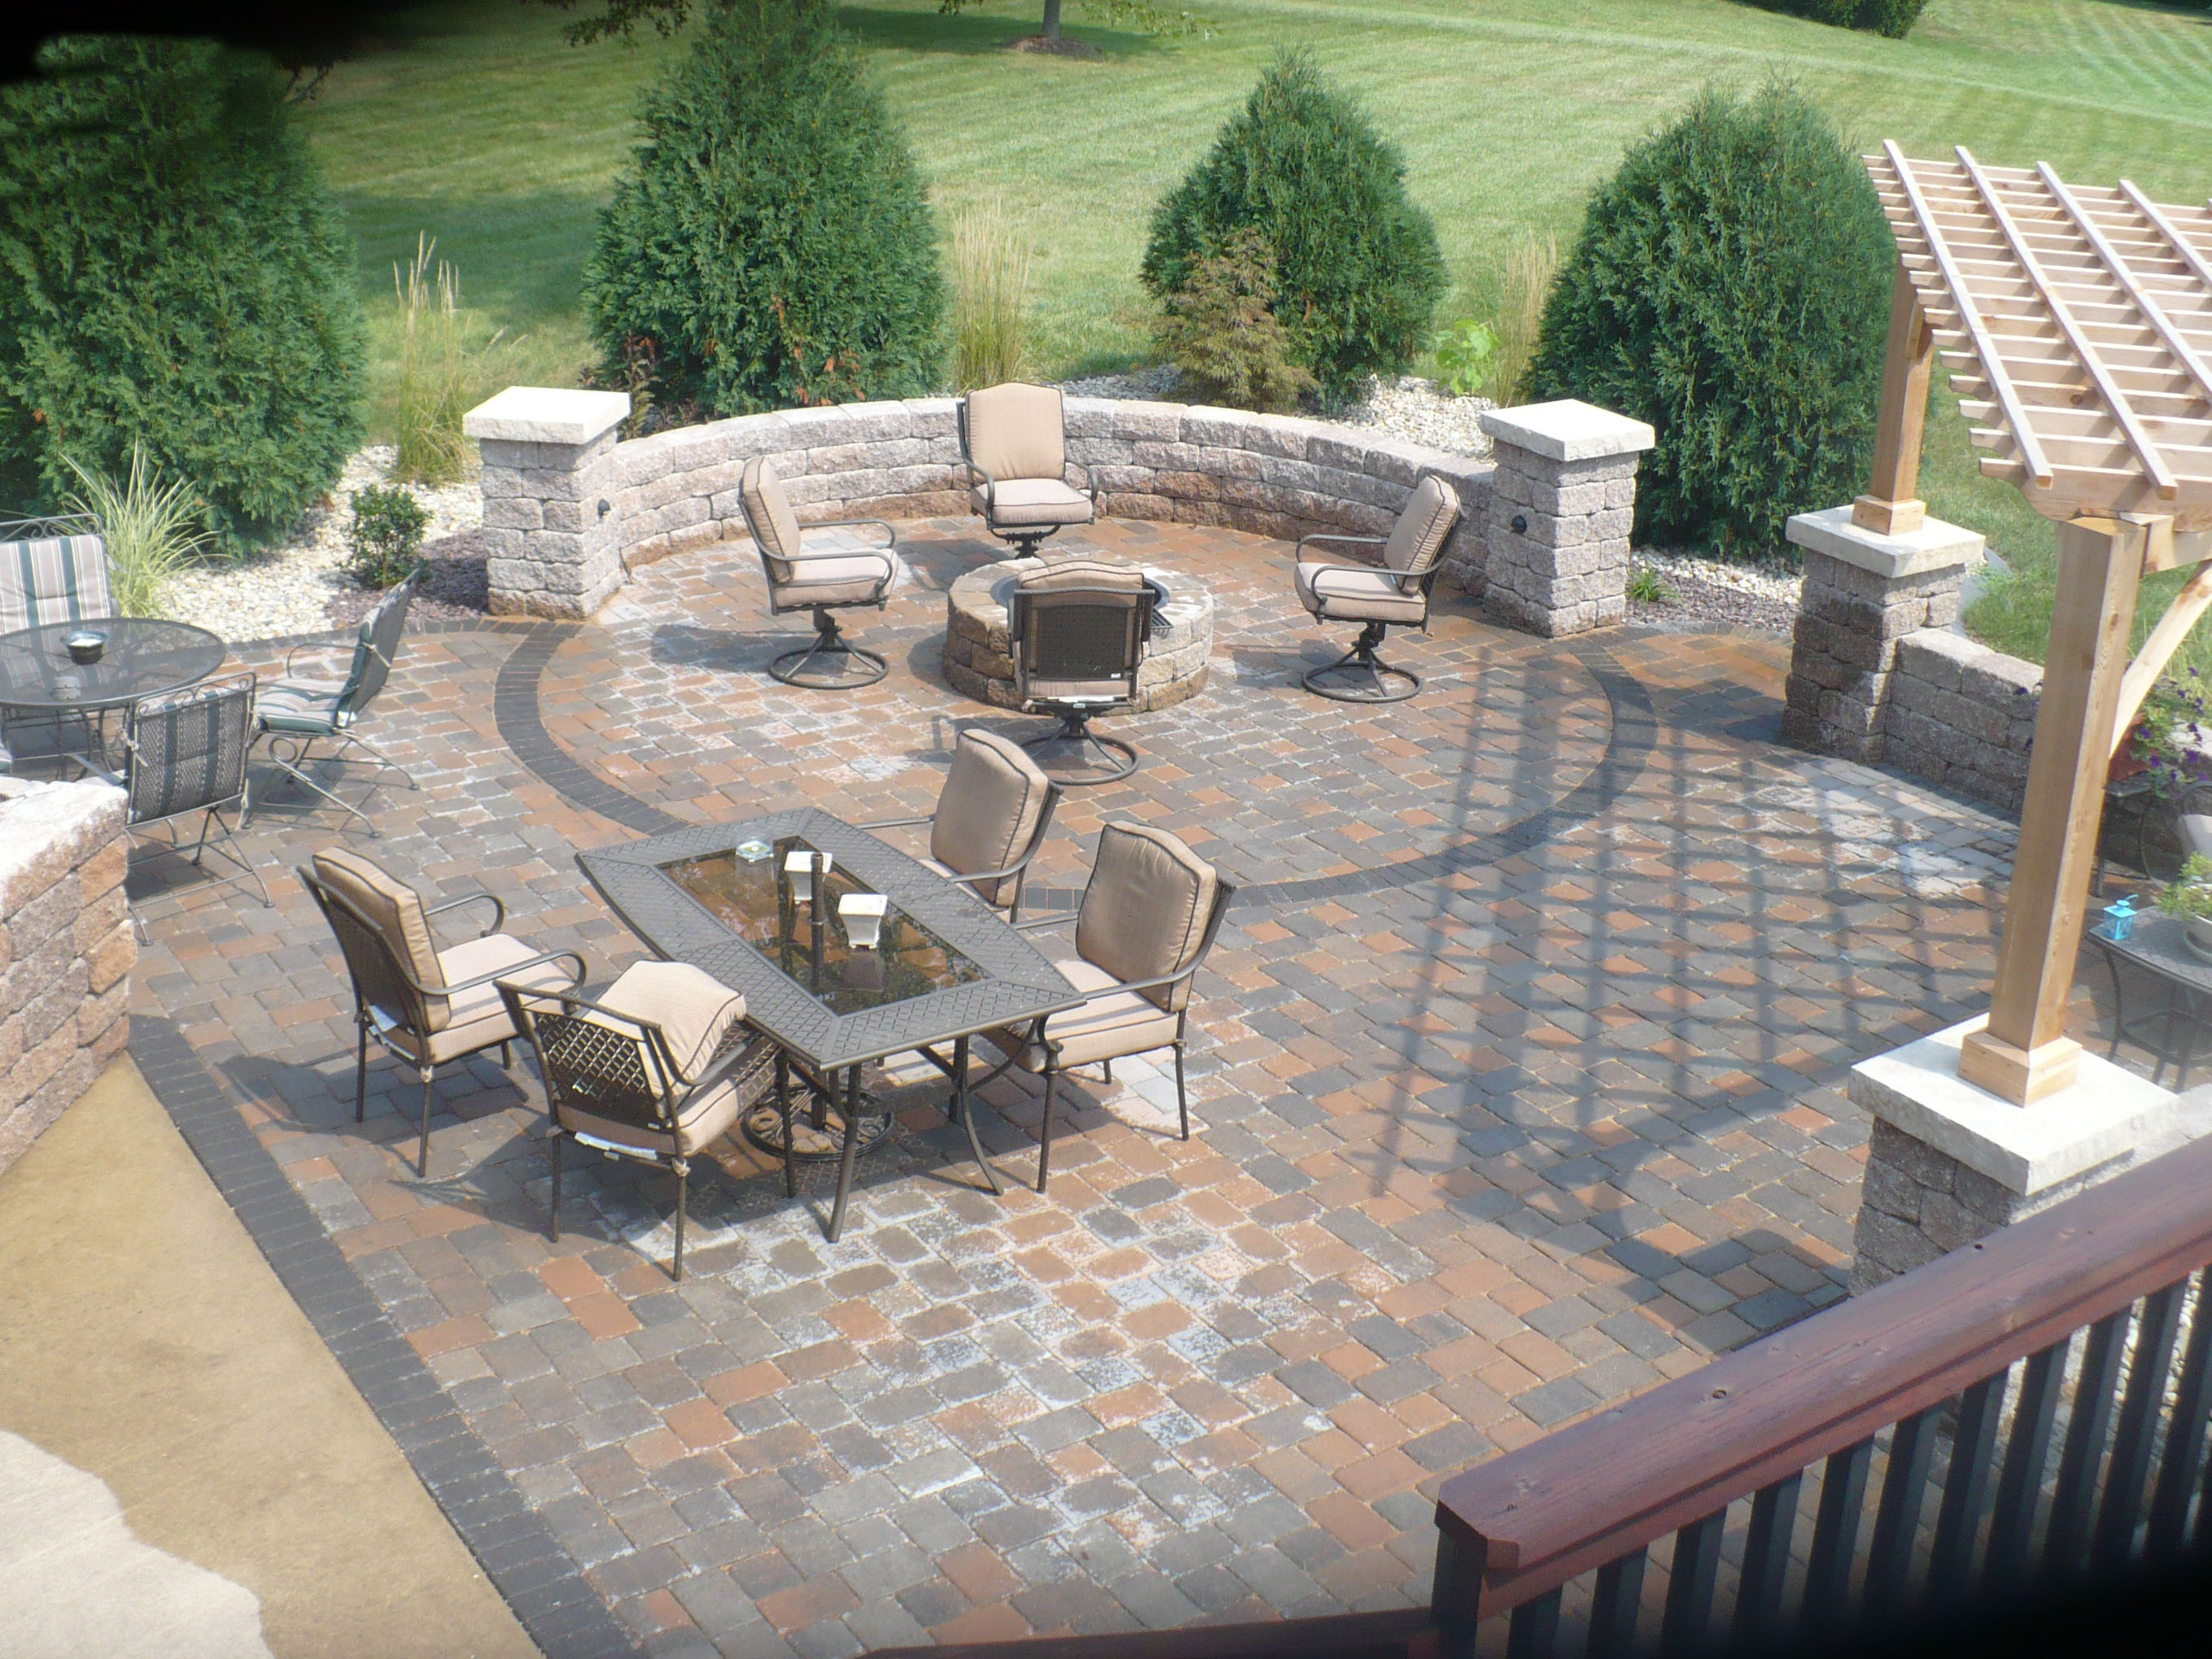 Patios - AJD Landscaping - Collinsville, IL on Patio Stone Wall Ideas id=76617